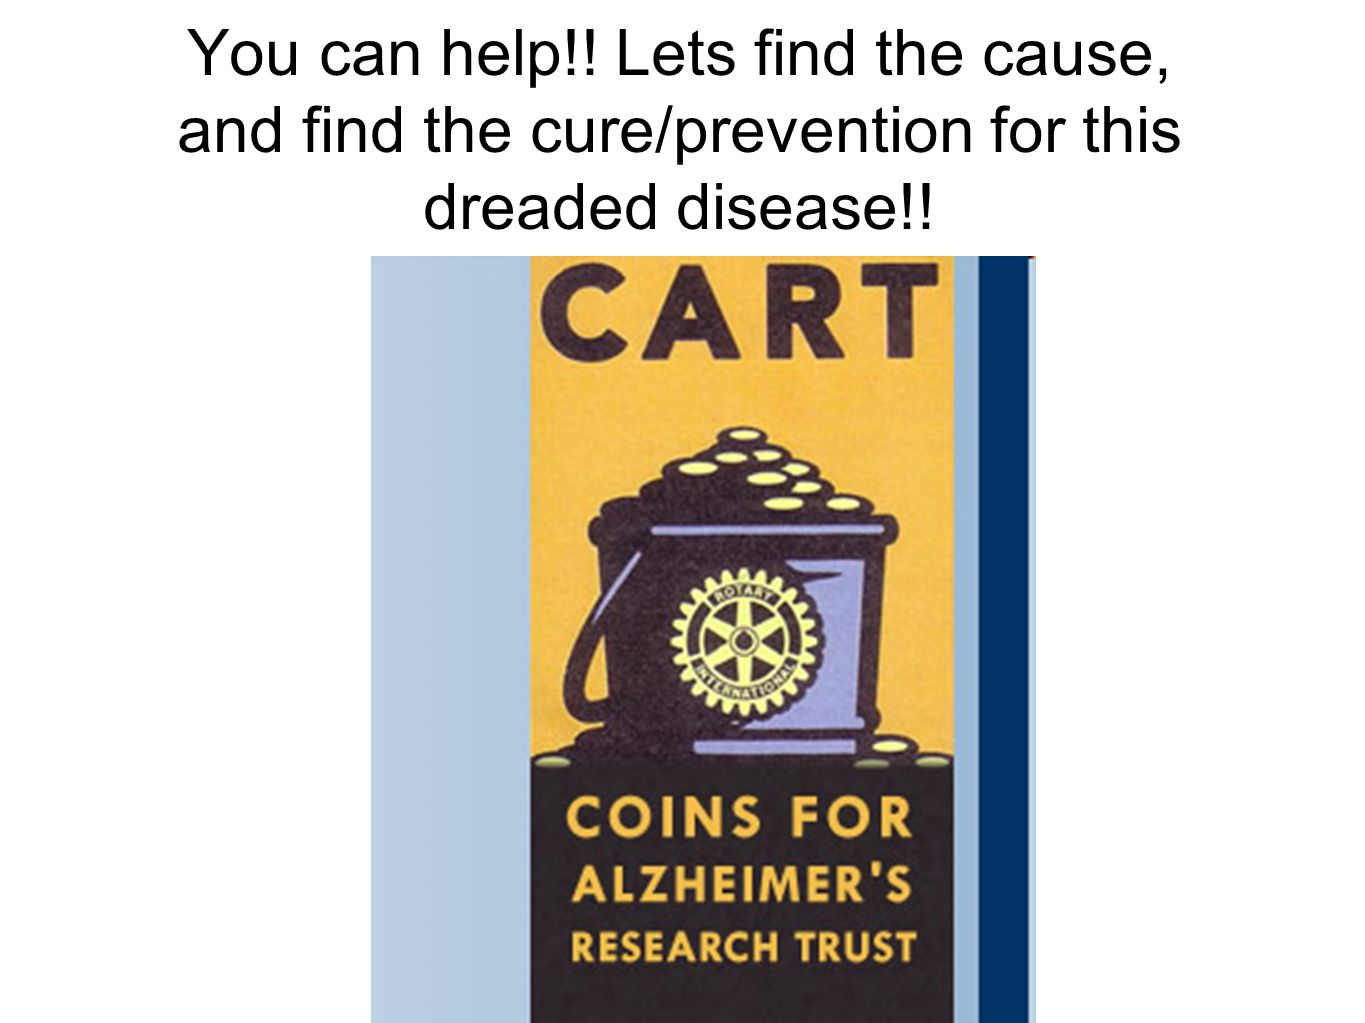 You can help!! Lets find the cause, and find the cure/prevention for this dreaded disease!!